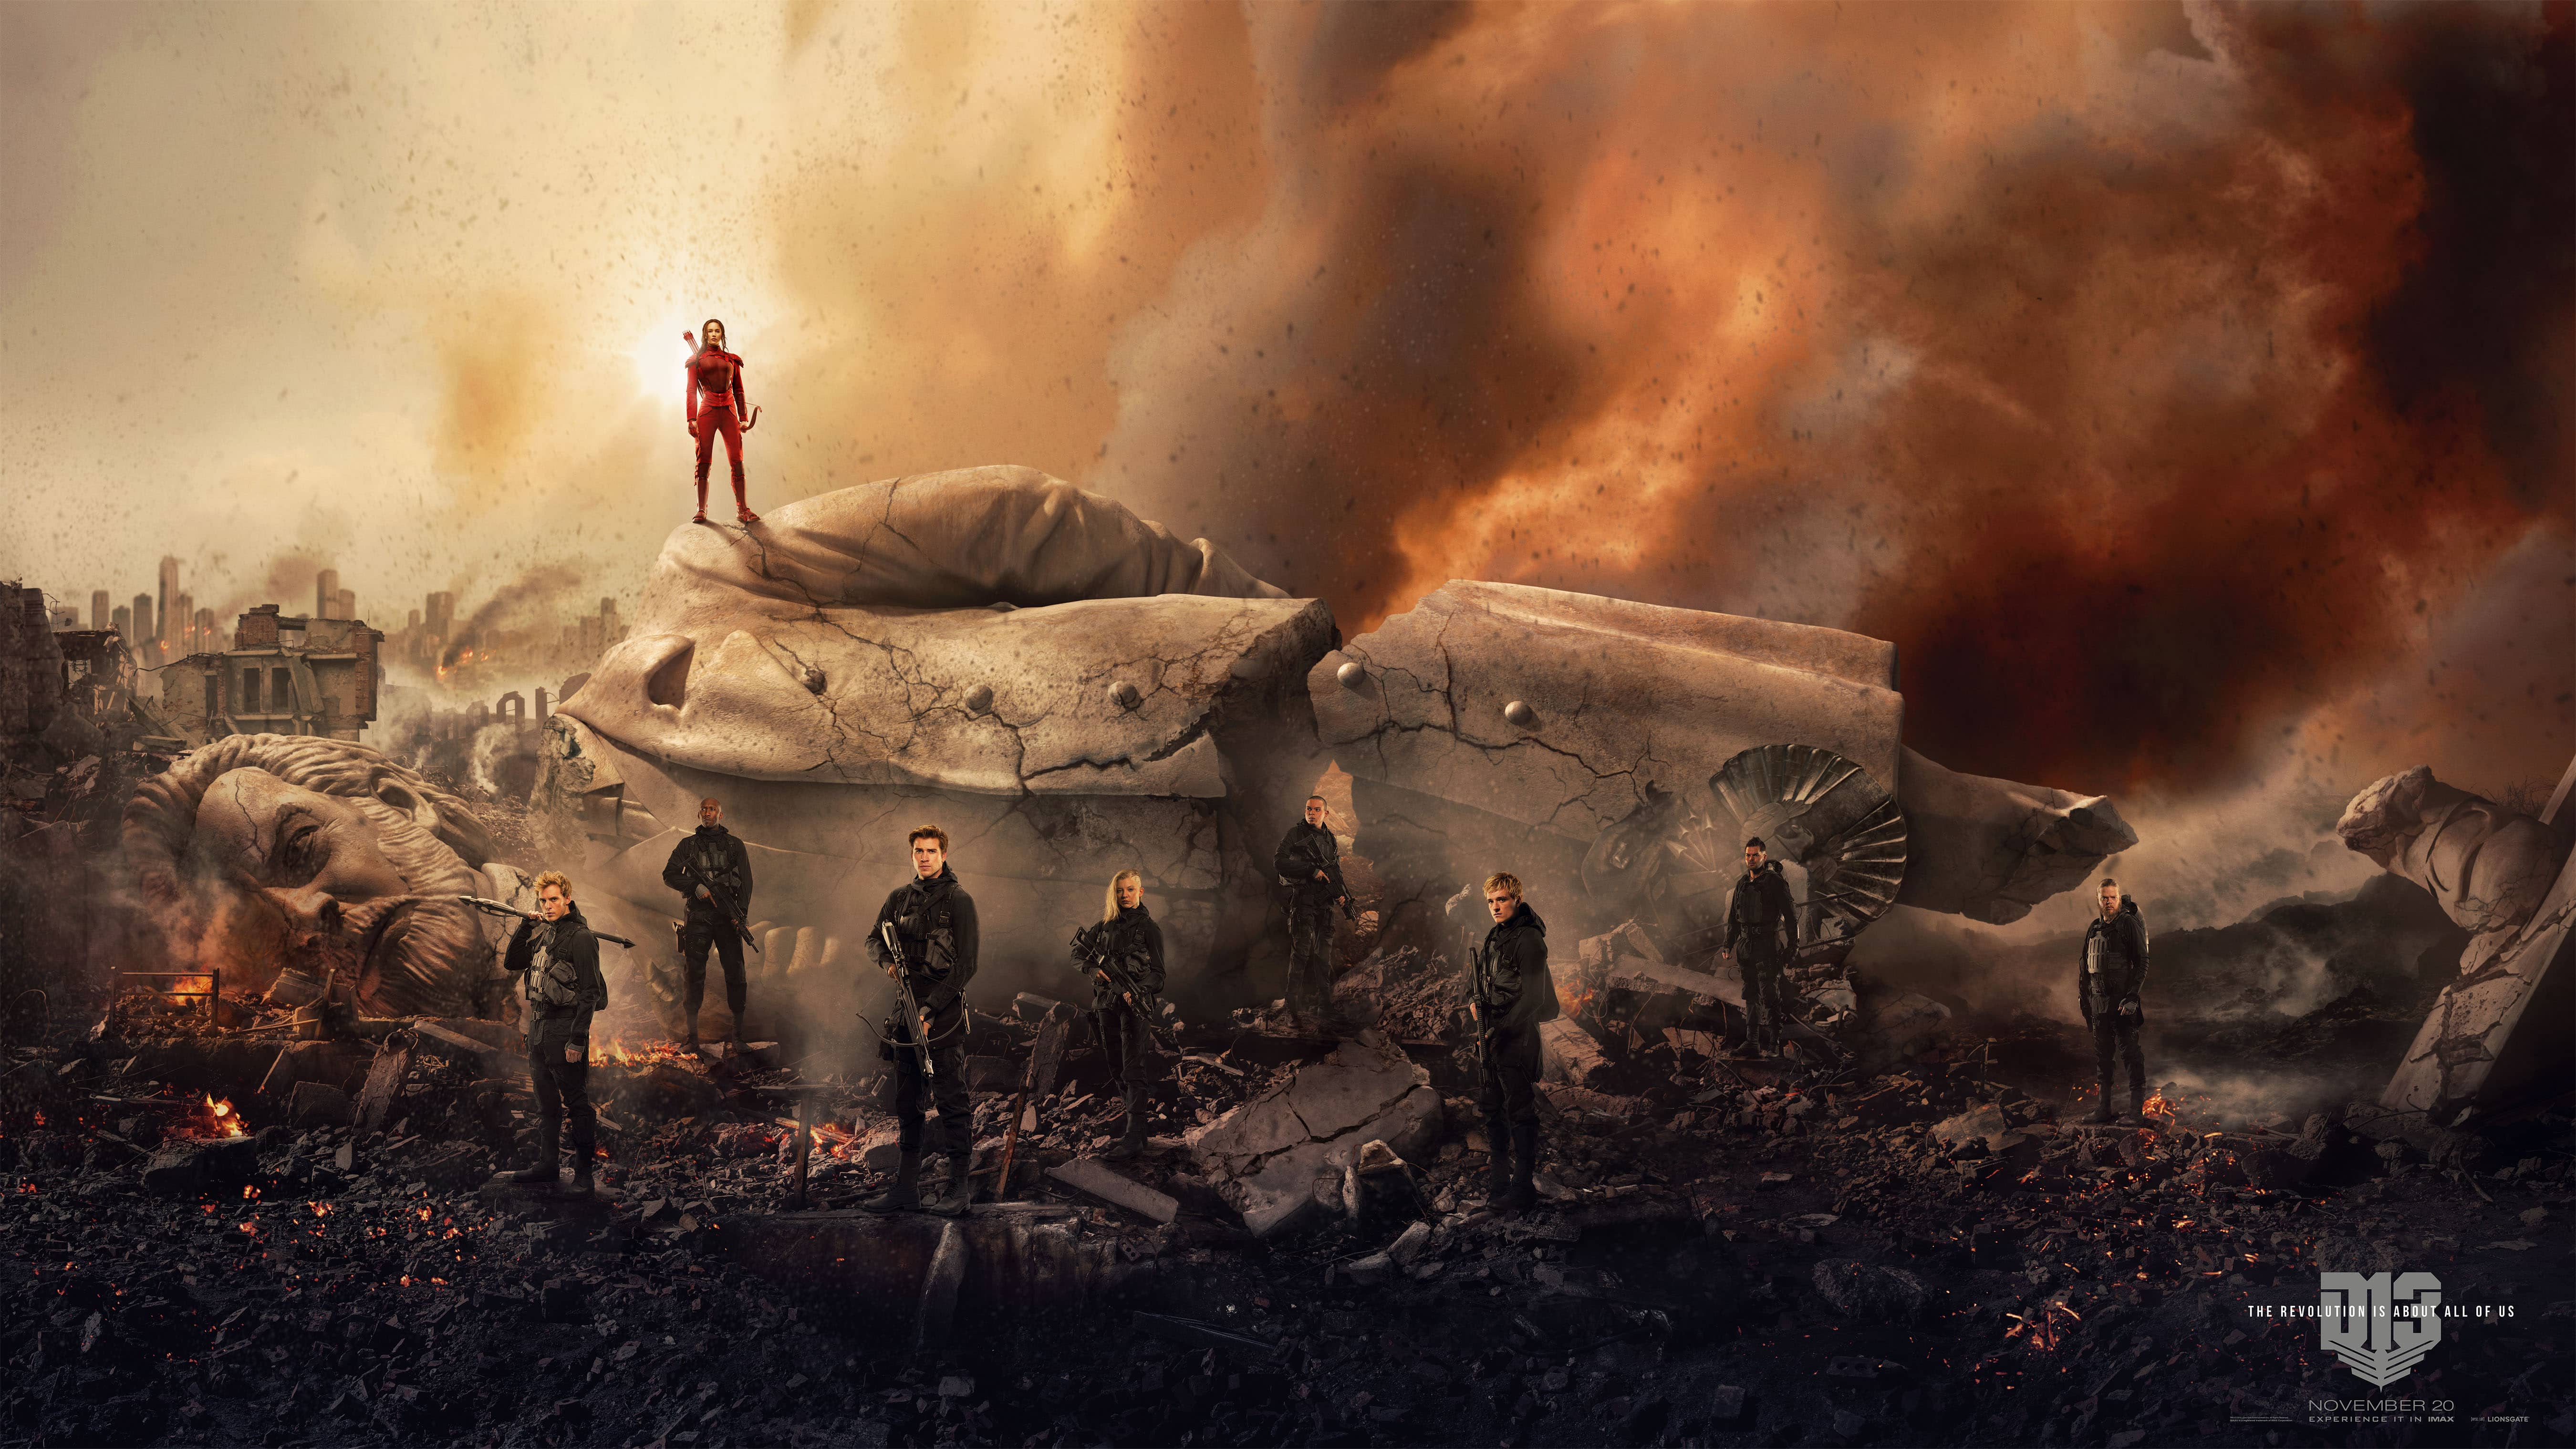 The Hunger Games: Mockingjay - Part 2 Widescreen